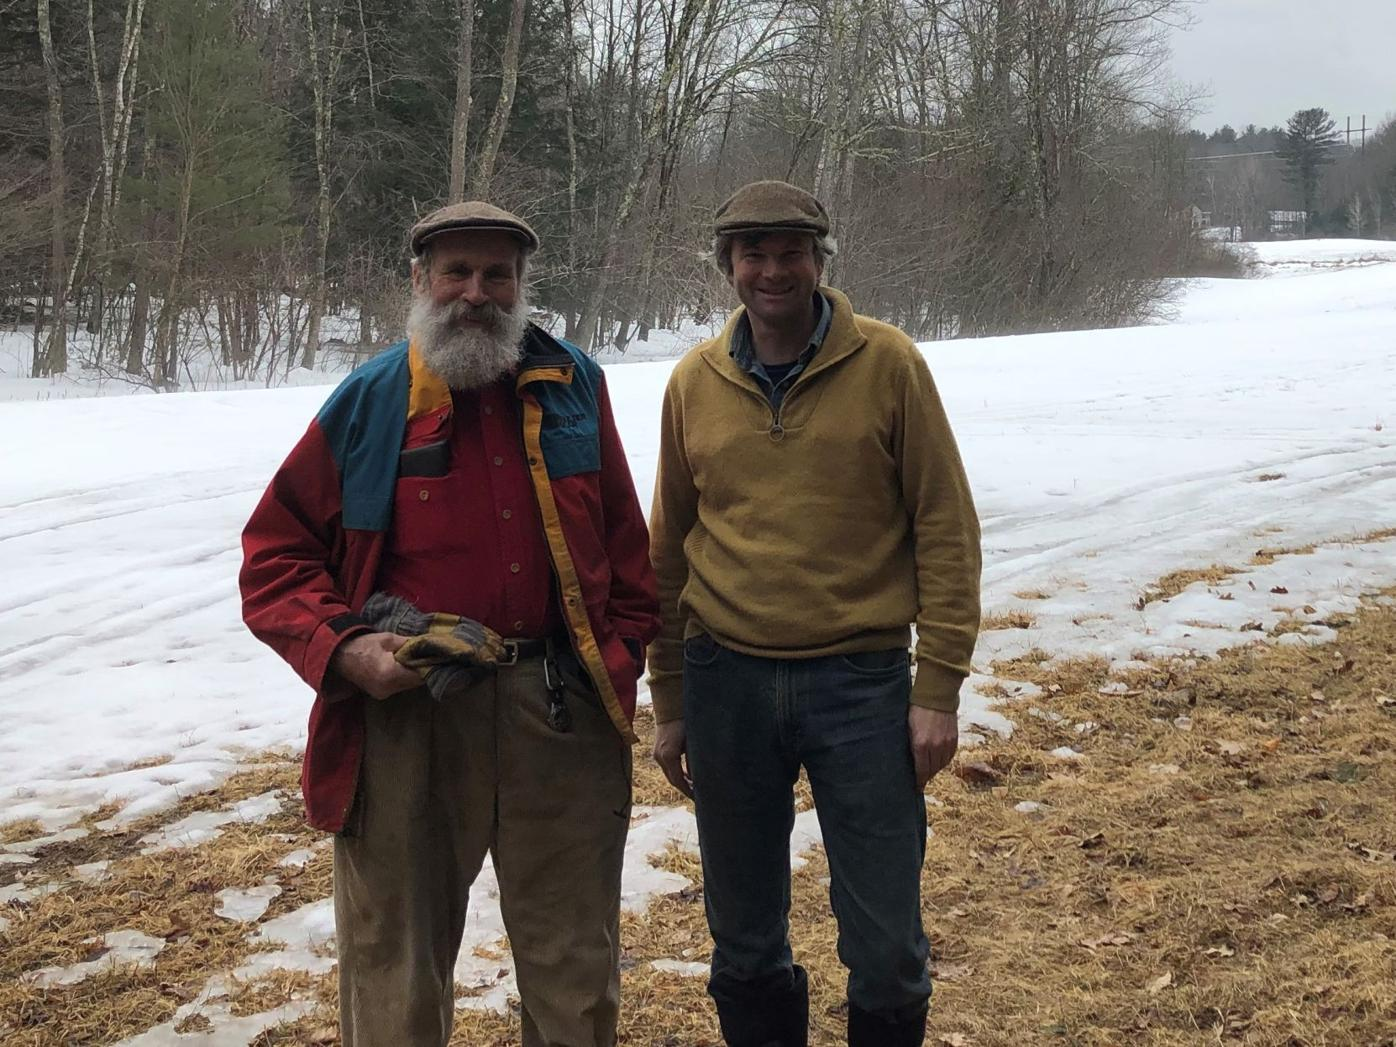 Dorn and Chuck Cox of Tuckaway Farm